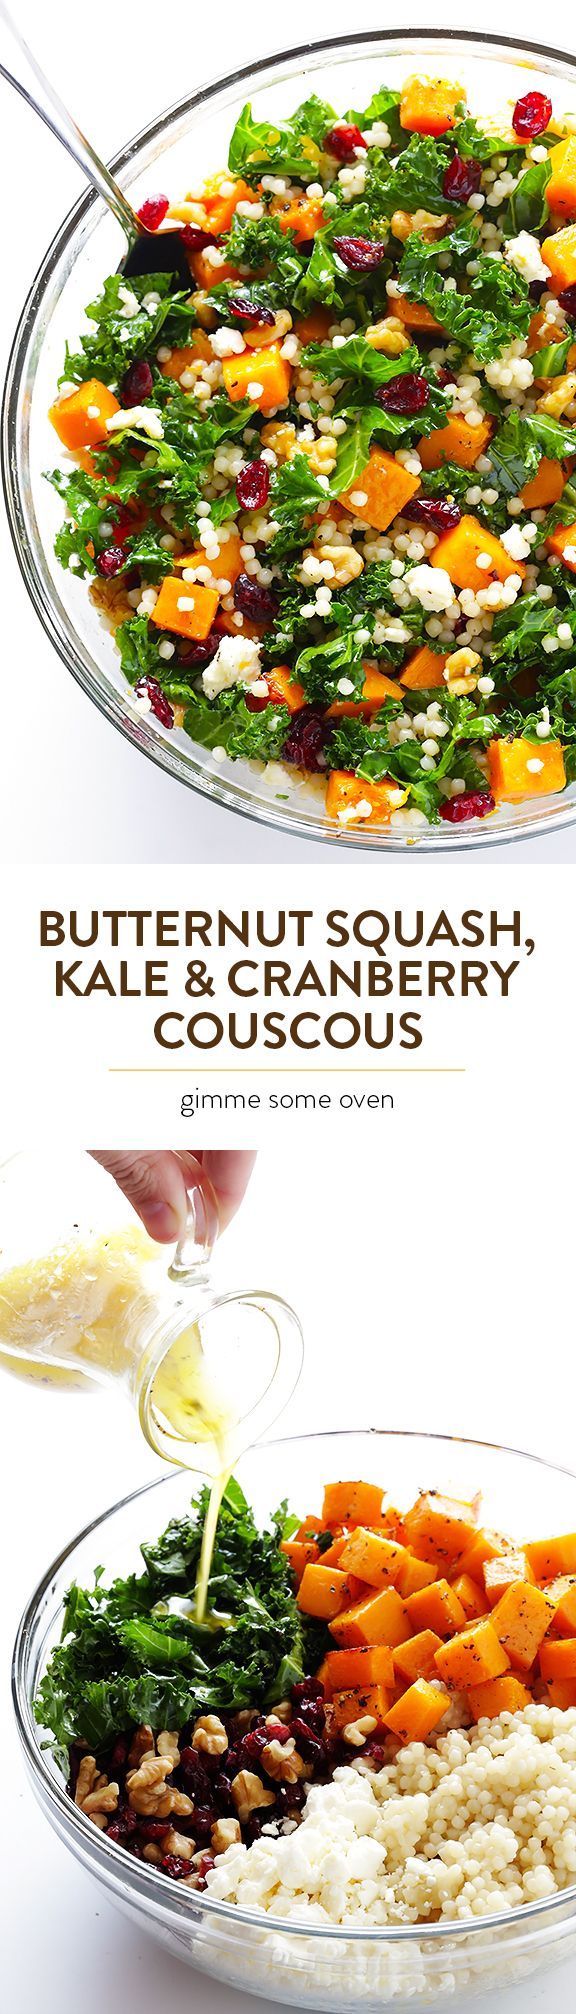 This Roasted Butternut Squash, Kale & Cranberry Couscous is simple to make, seasonal, and so hearty and delicious! | gimmesomeoven.com this has